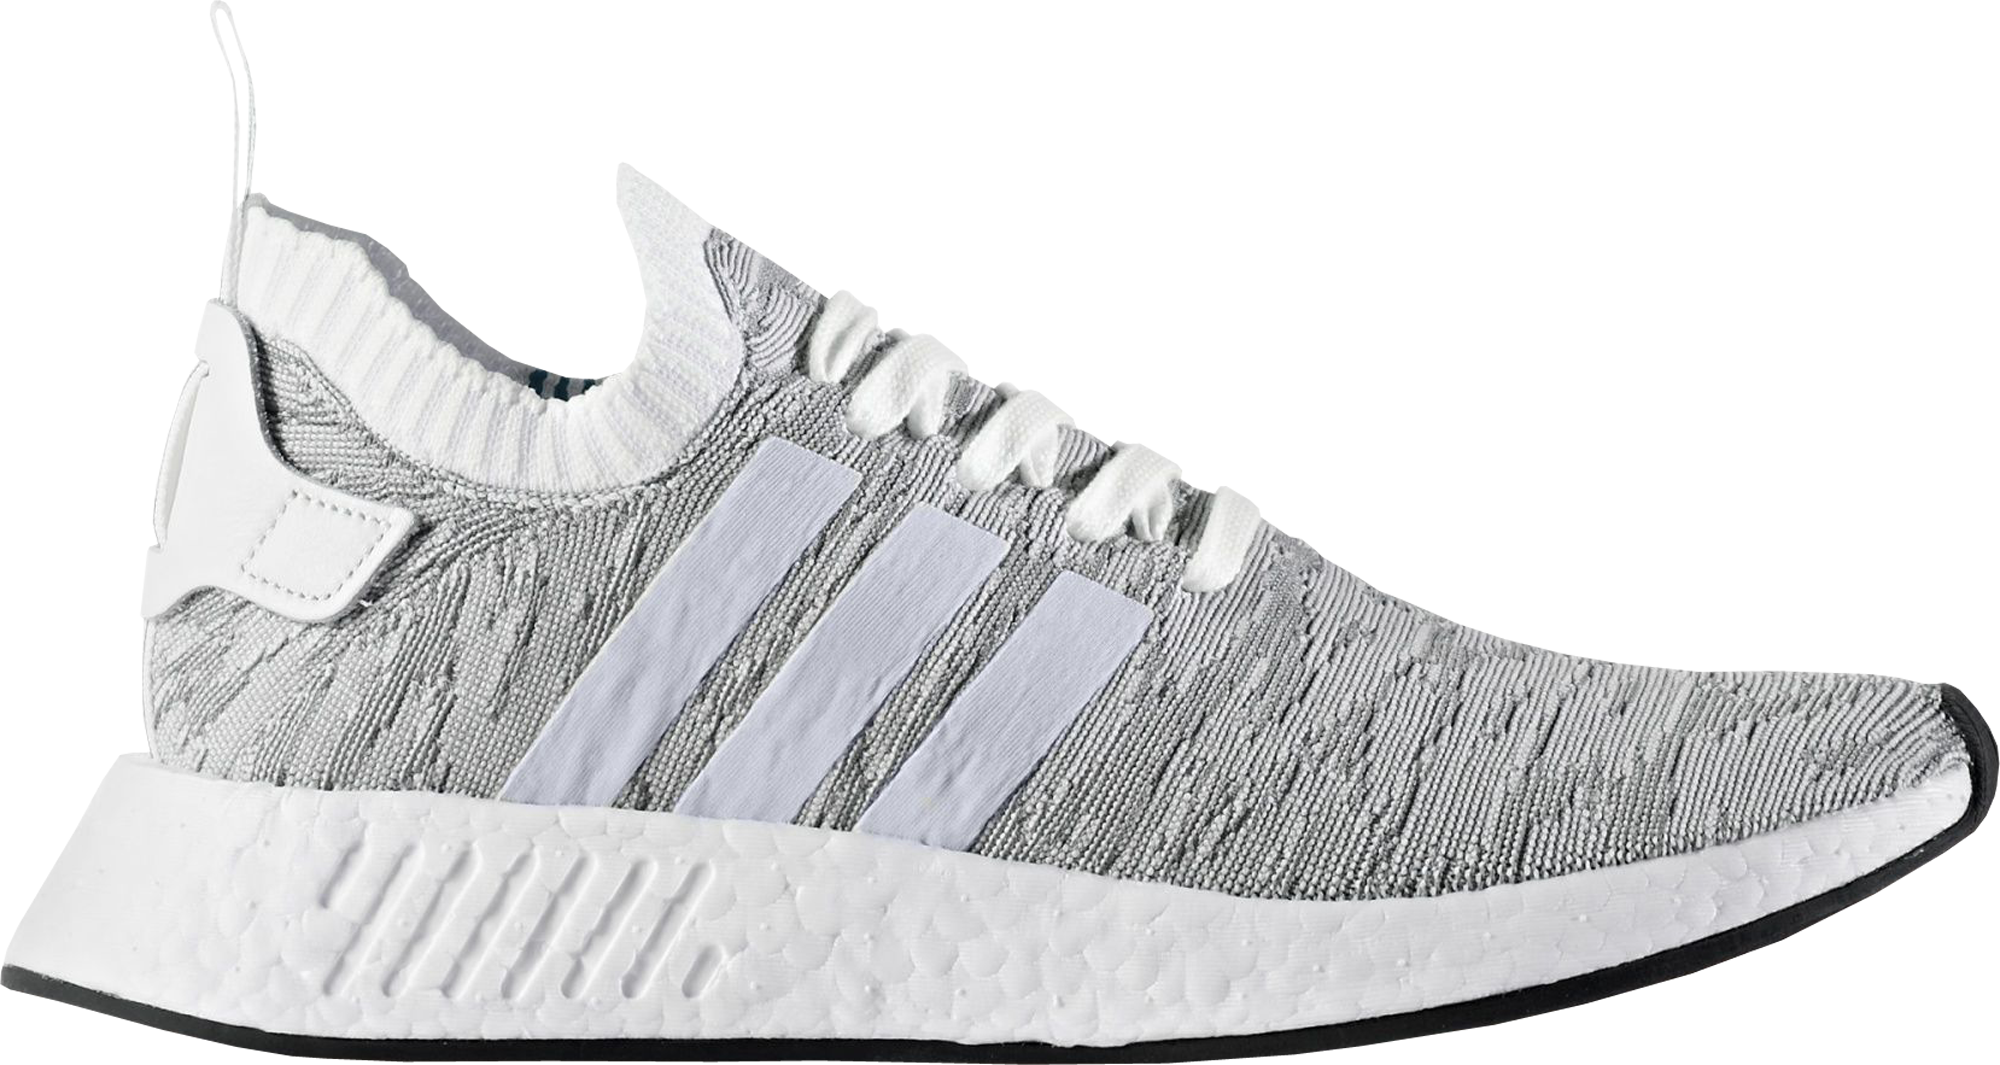 adidas nmd r2 grey and white